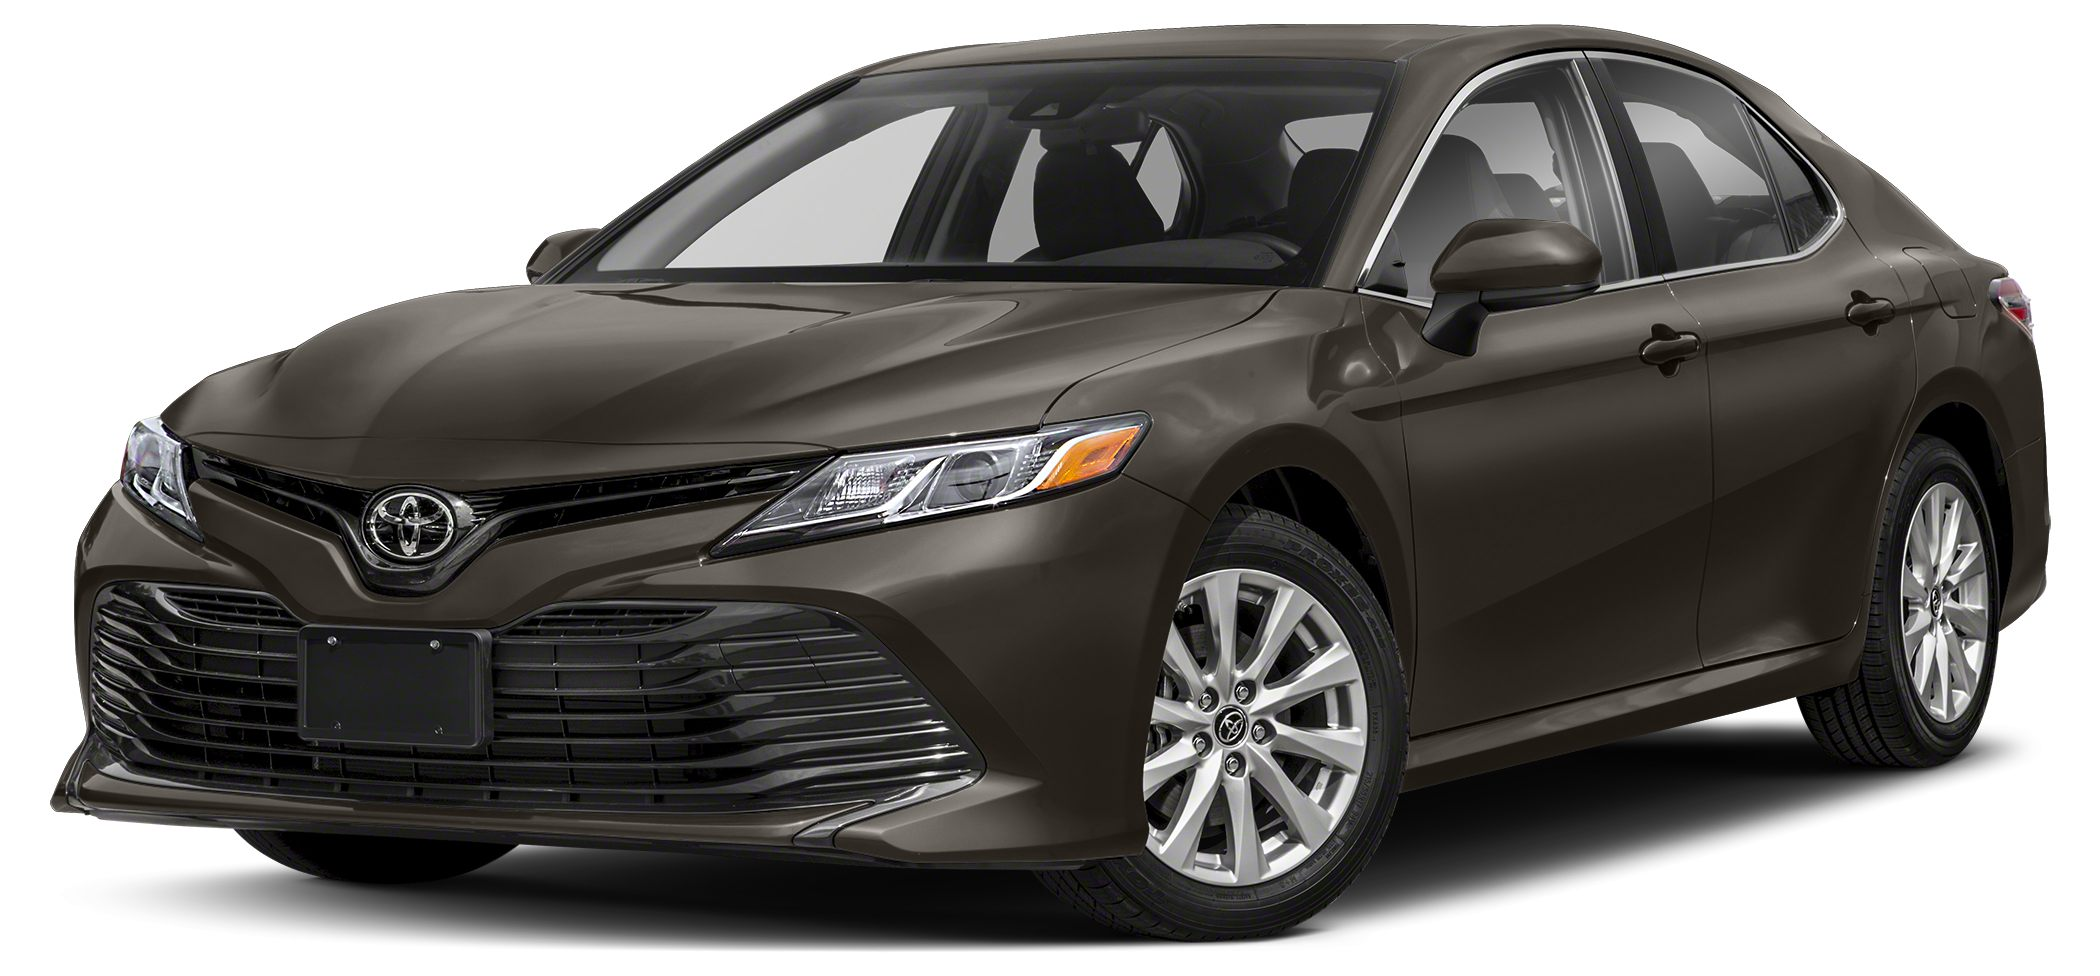 2018 Toyota Camry XLE Moonroof Heated Leather Seats Keyless Start Dual Zone AC PANORAMIC ROOF